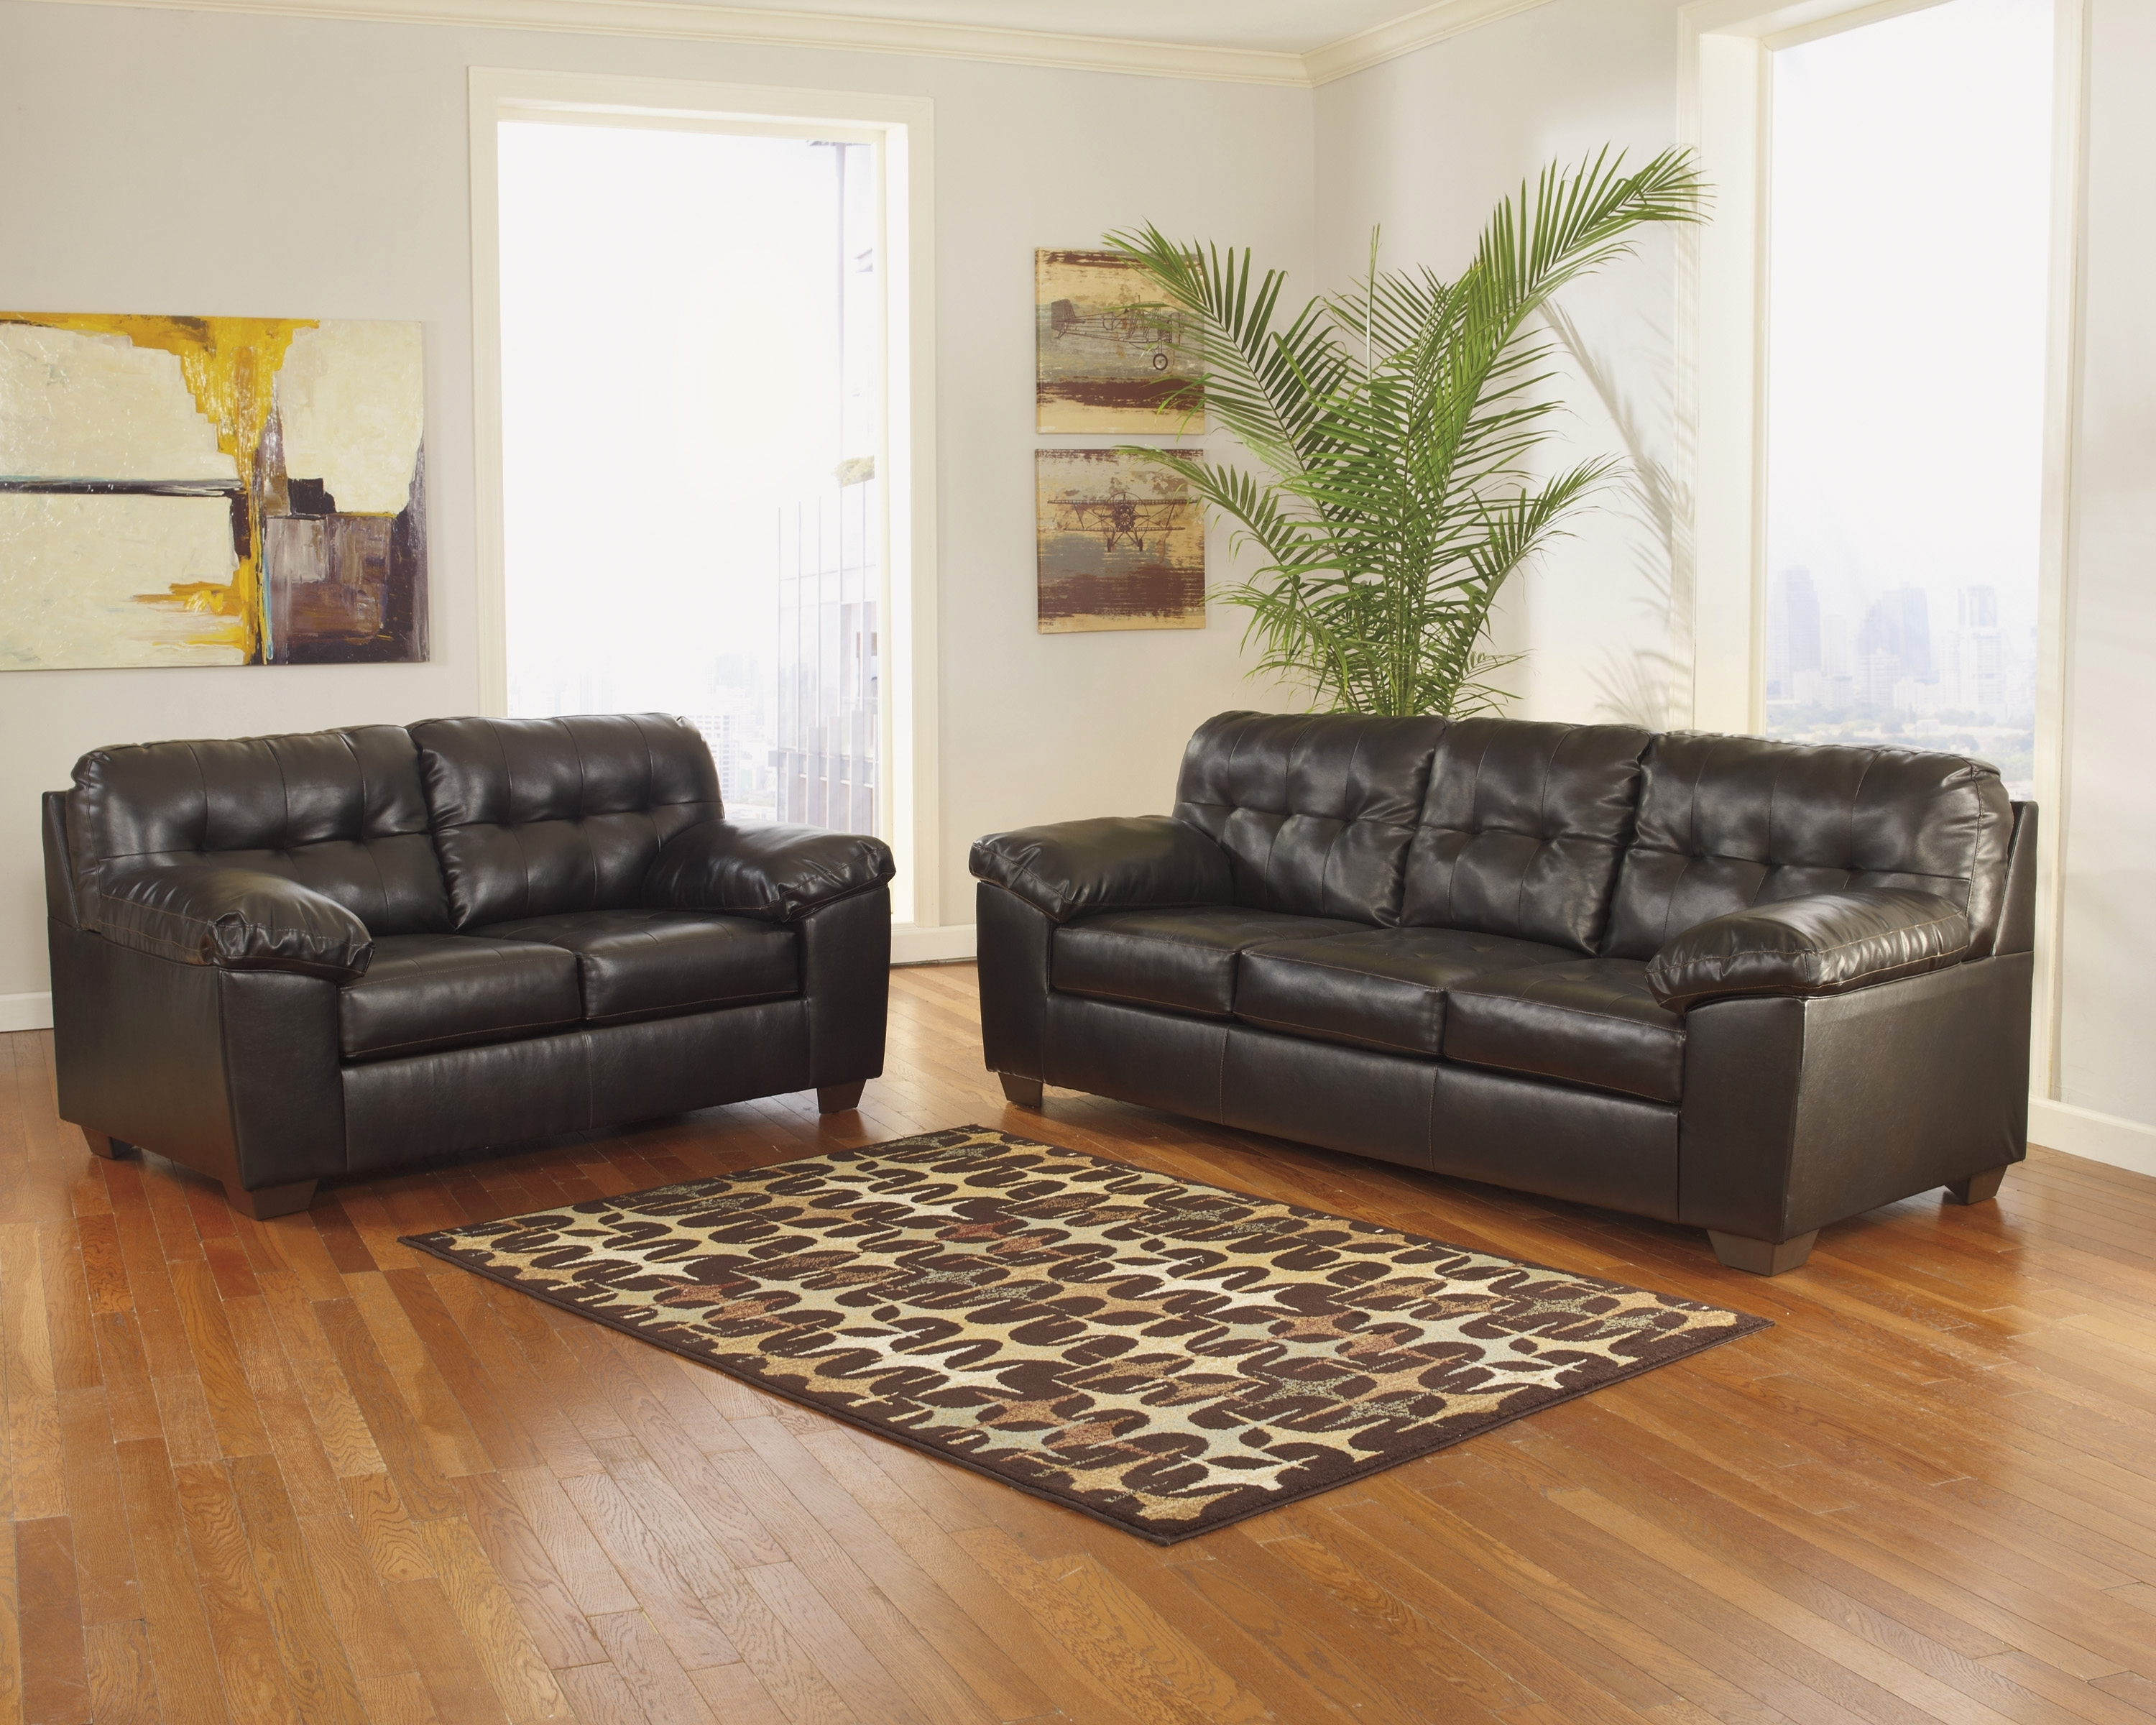 Sears Sectional Sofas For 2018 New Sofa Bed Under 300 2018 – Couches Ideas (View 8 of 20)